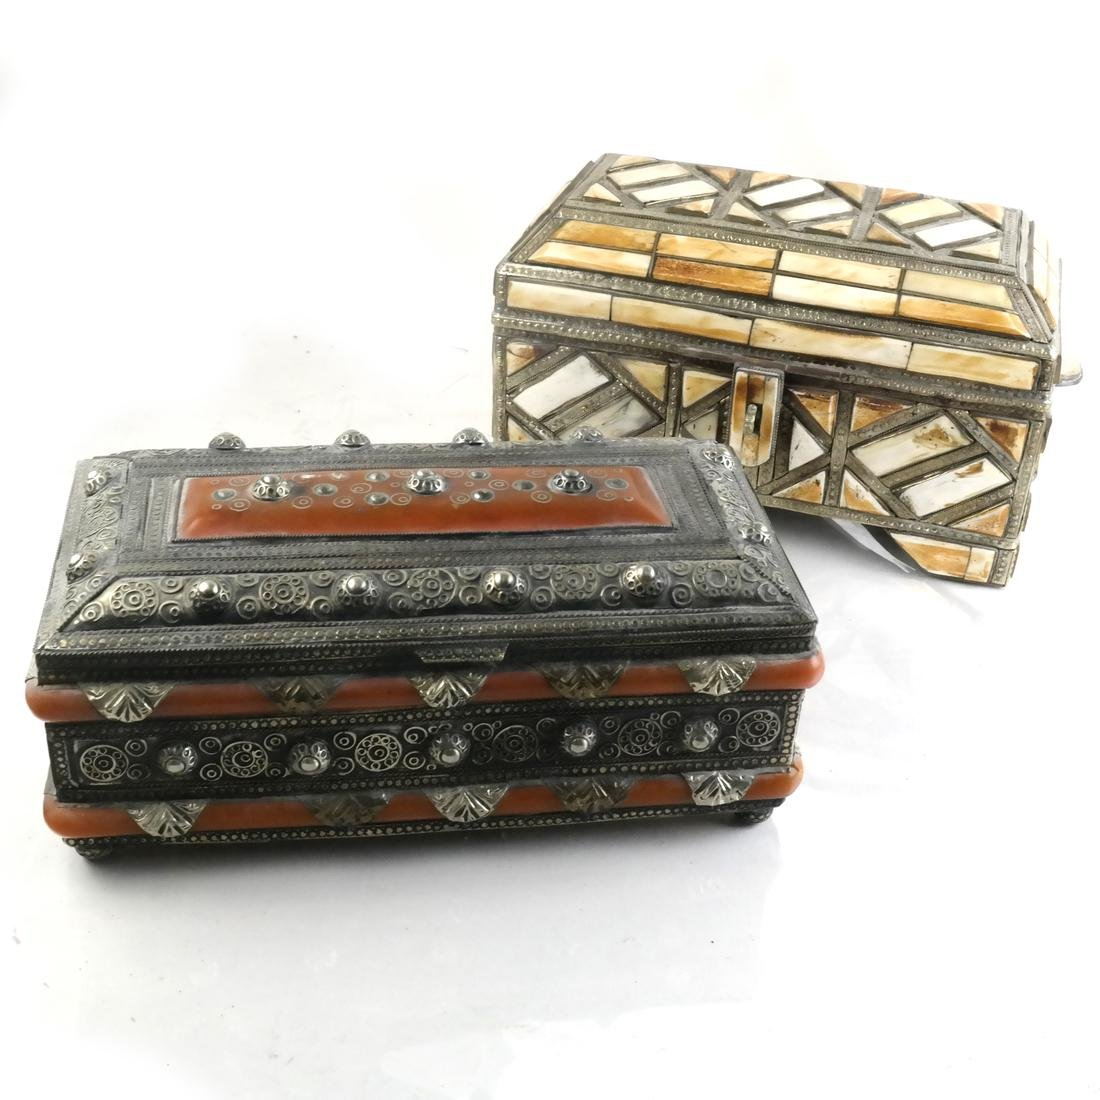 Middle Eastern Jewelry Boxes